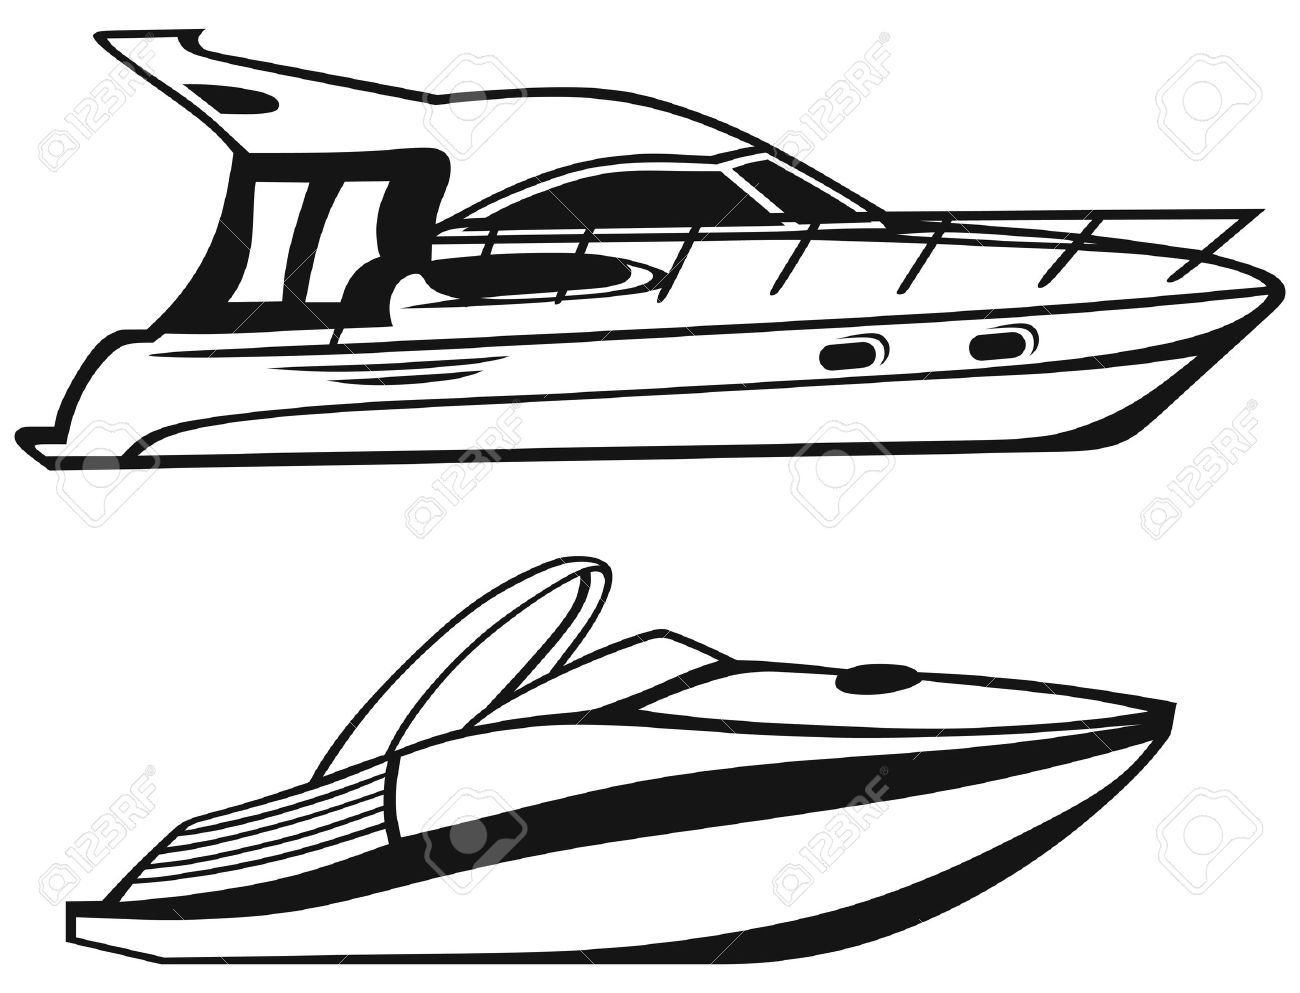 Black and white clipart yacht image library Yacht clipart black and white 4 » Clipart Station image library